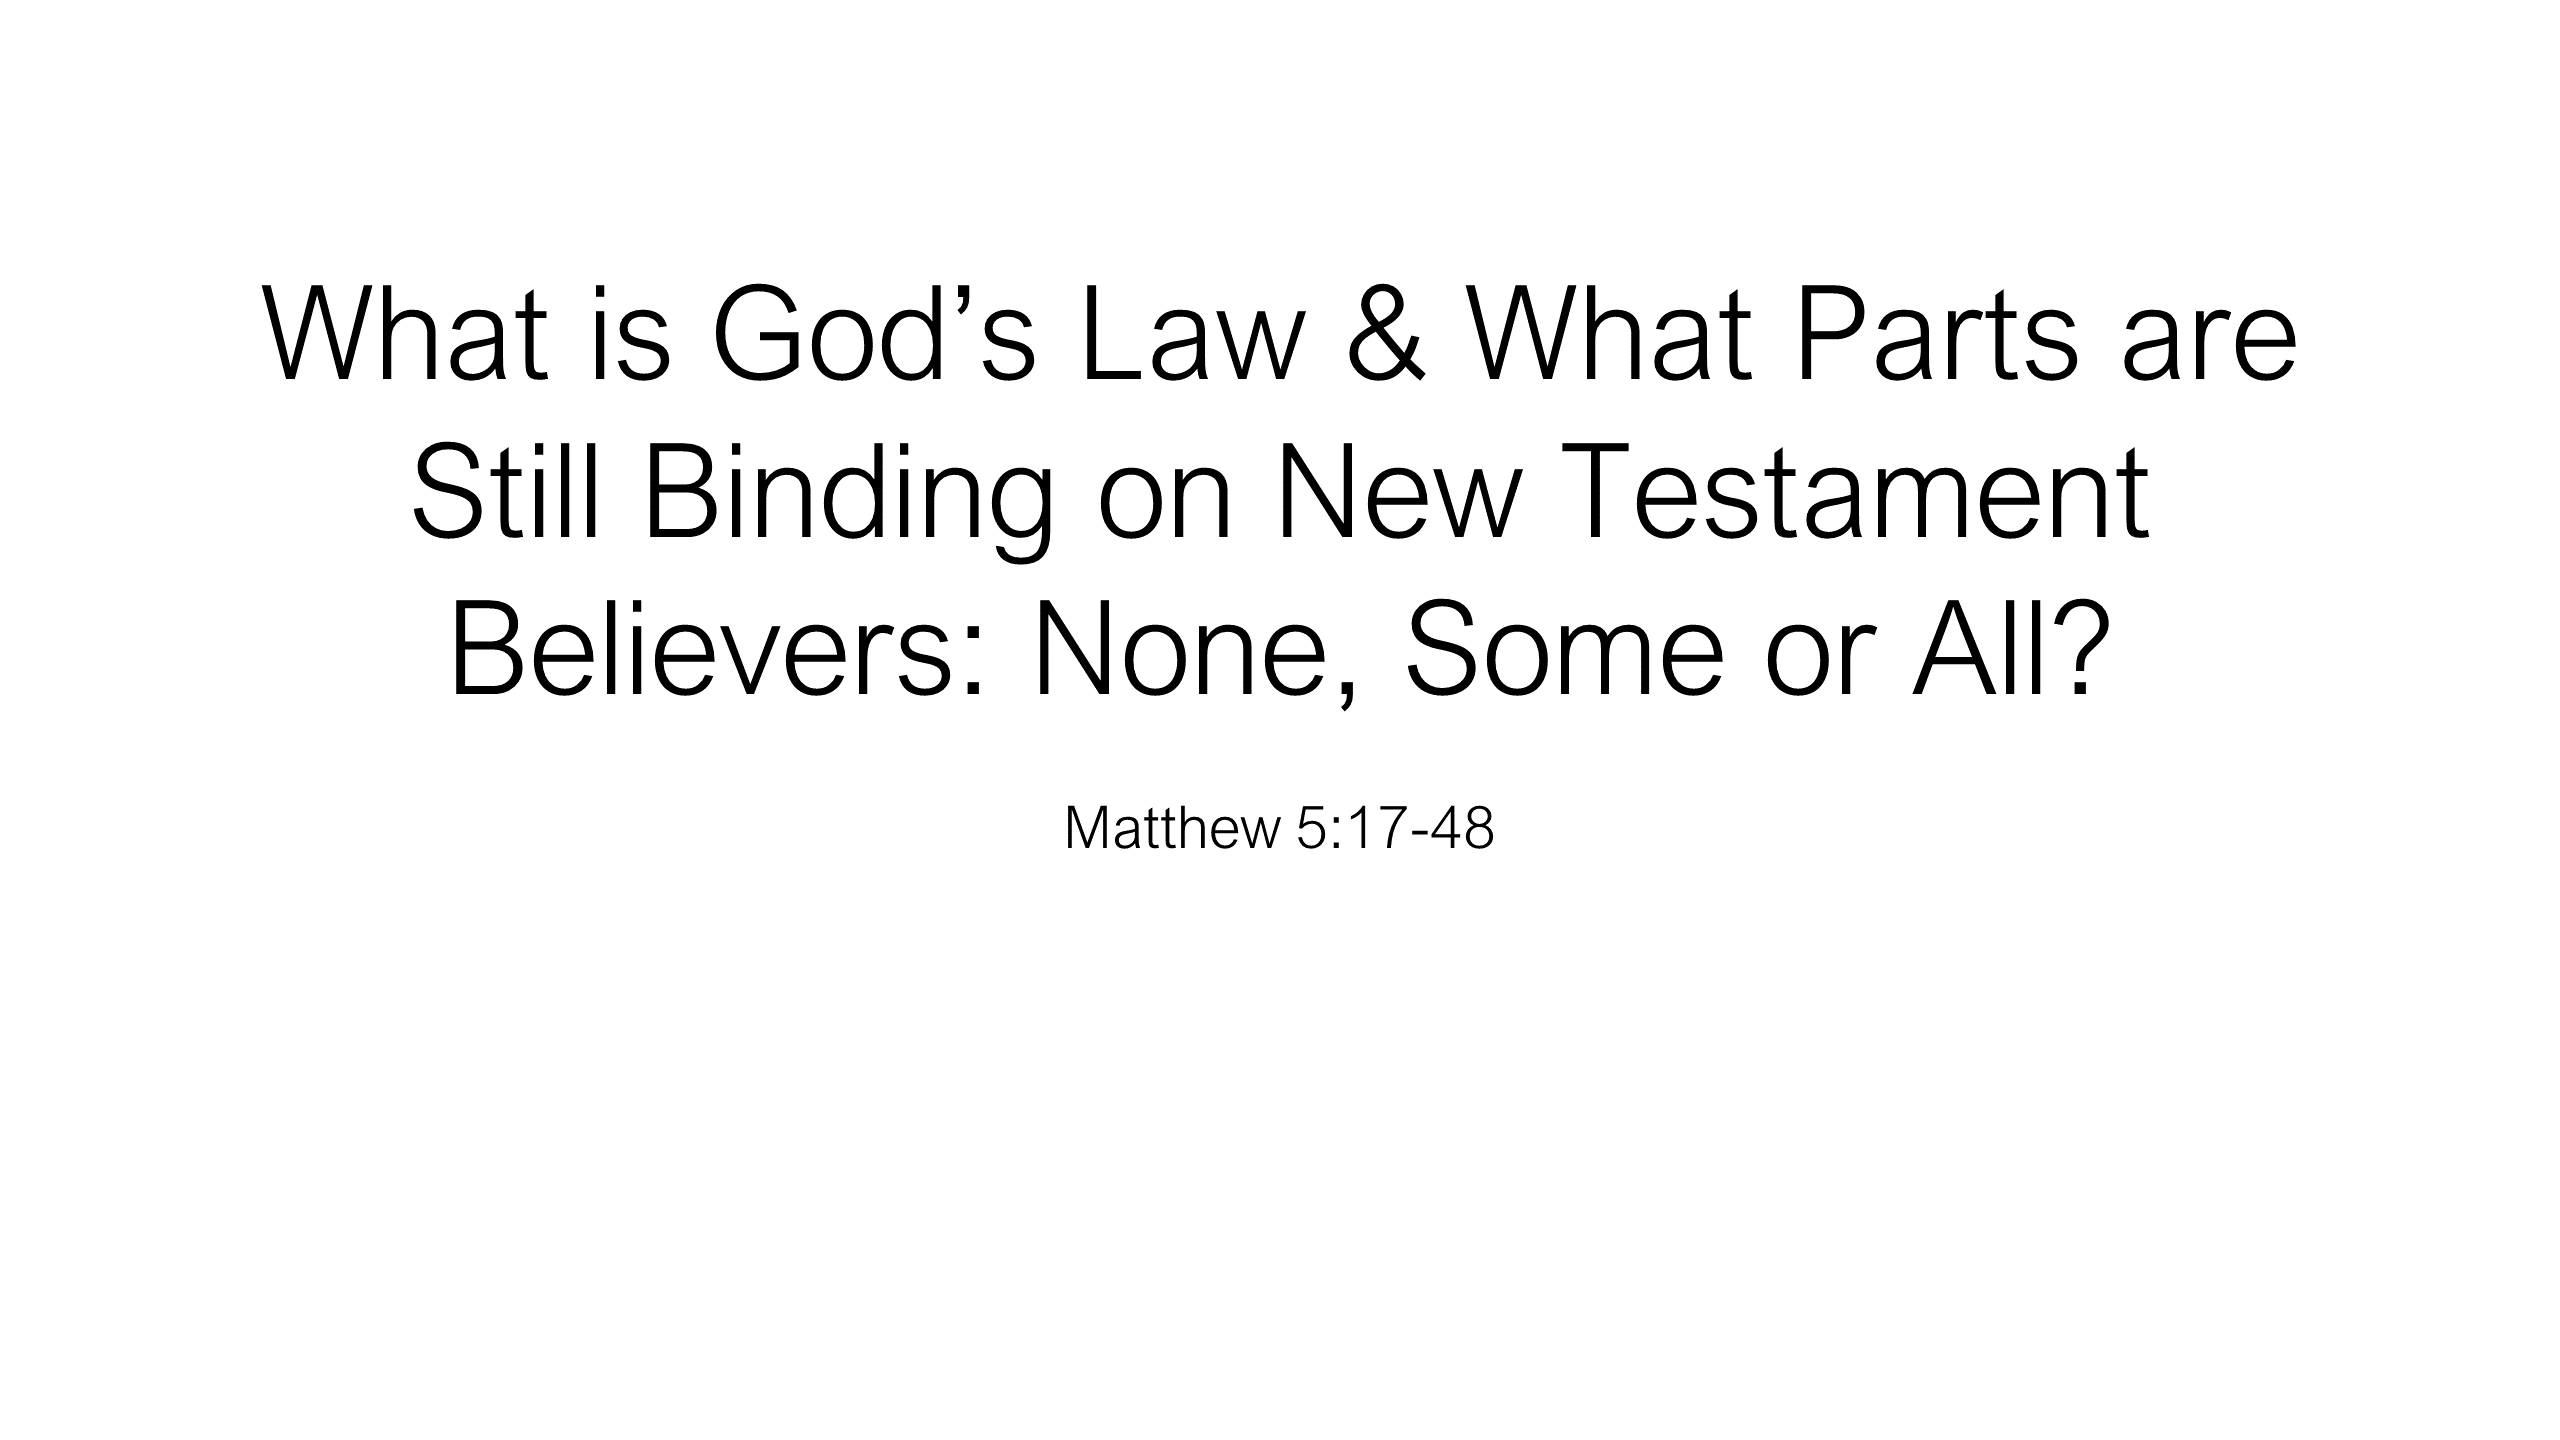 HFG-11 - What is God's Law & What Parts are Still Binding on New Testament Believers - None, Some or All (1)